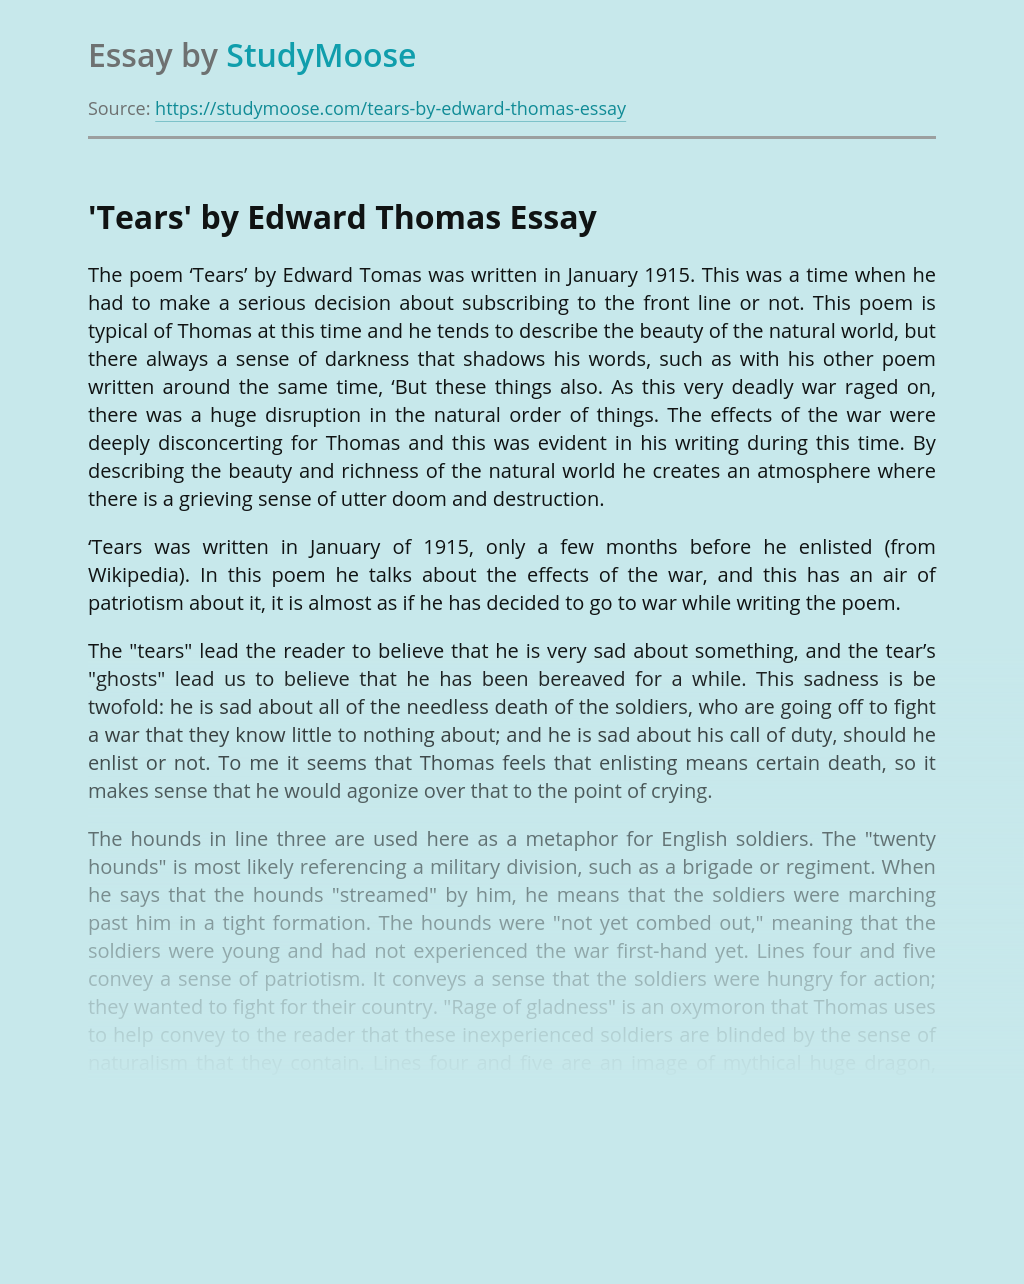 'Tears' by Edward Thomas